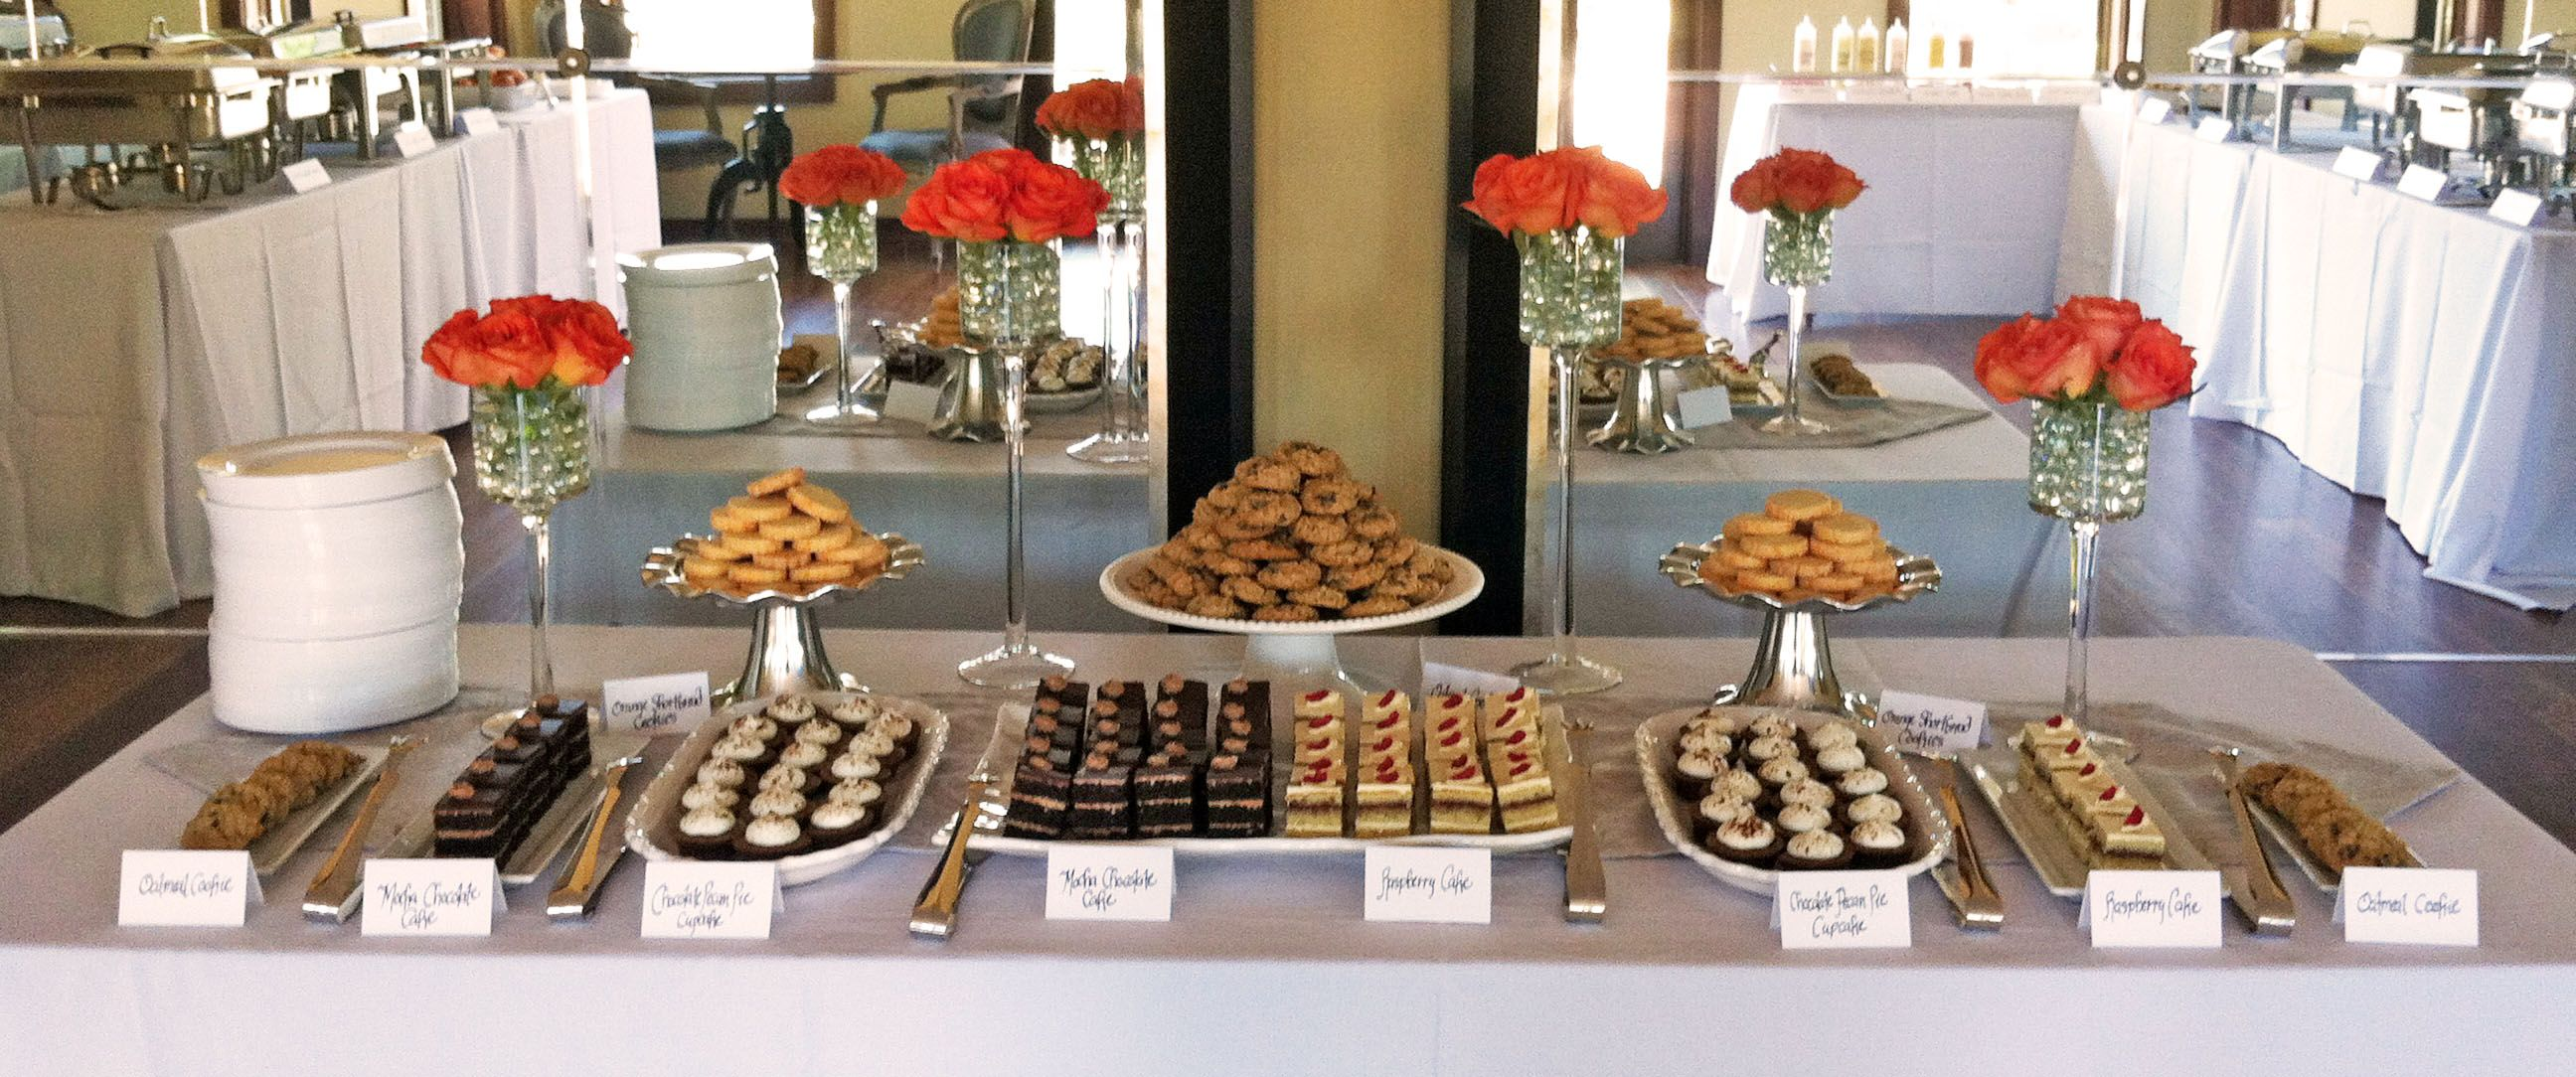 Dessert buffet table cake ideas and designs - Tables roulantes dessertes ...